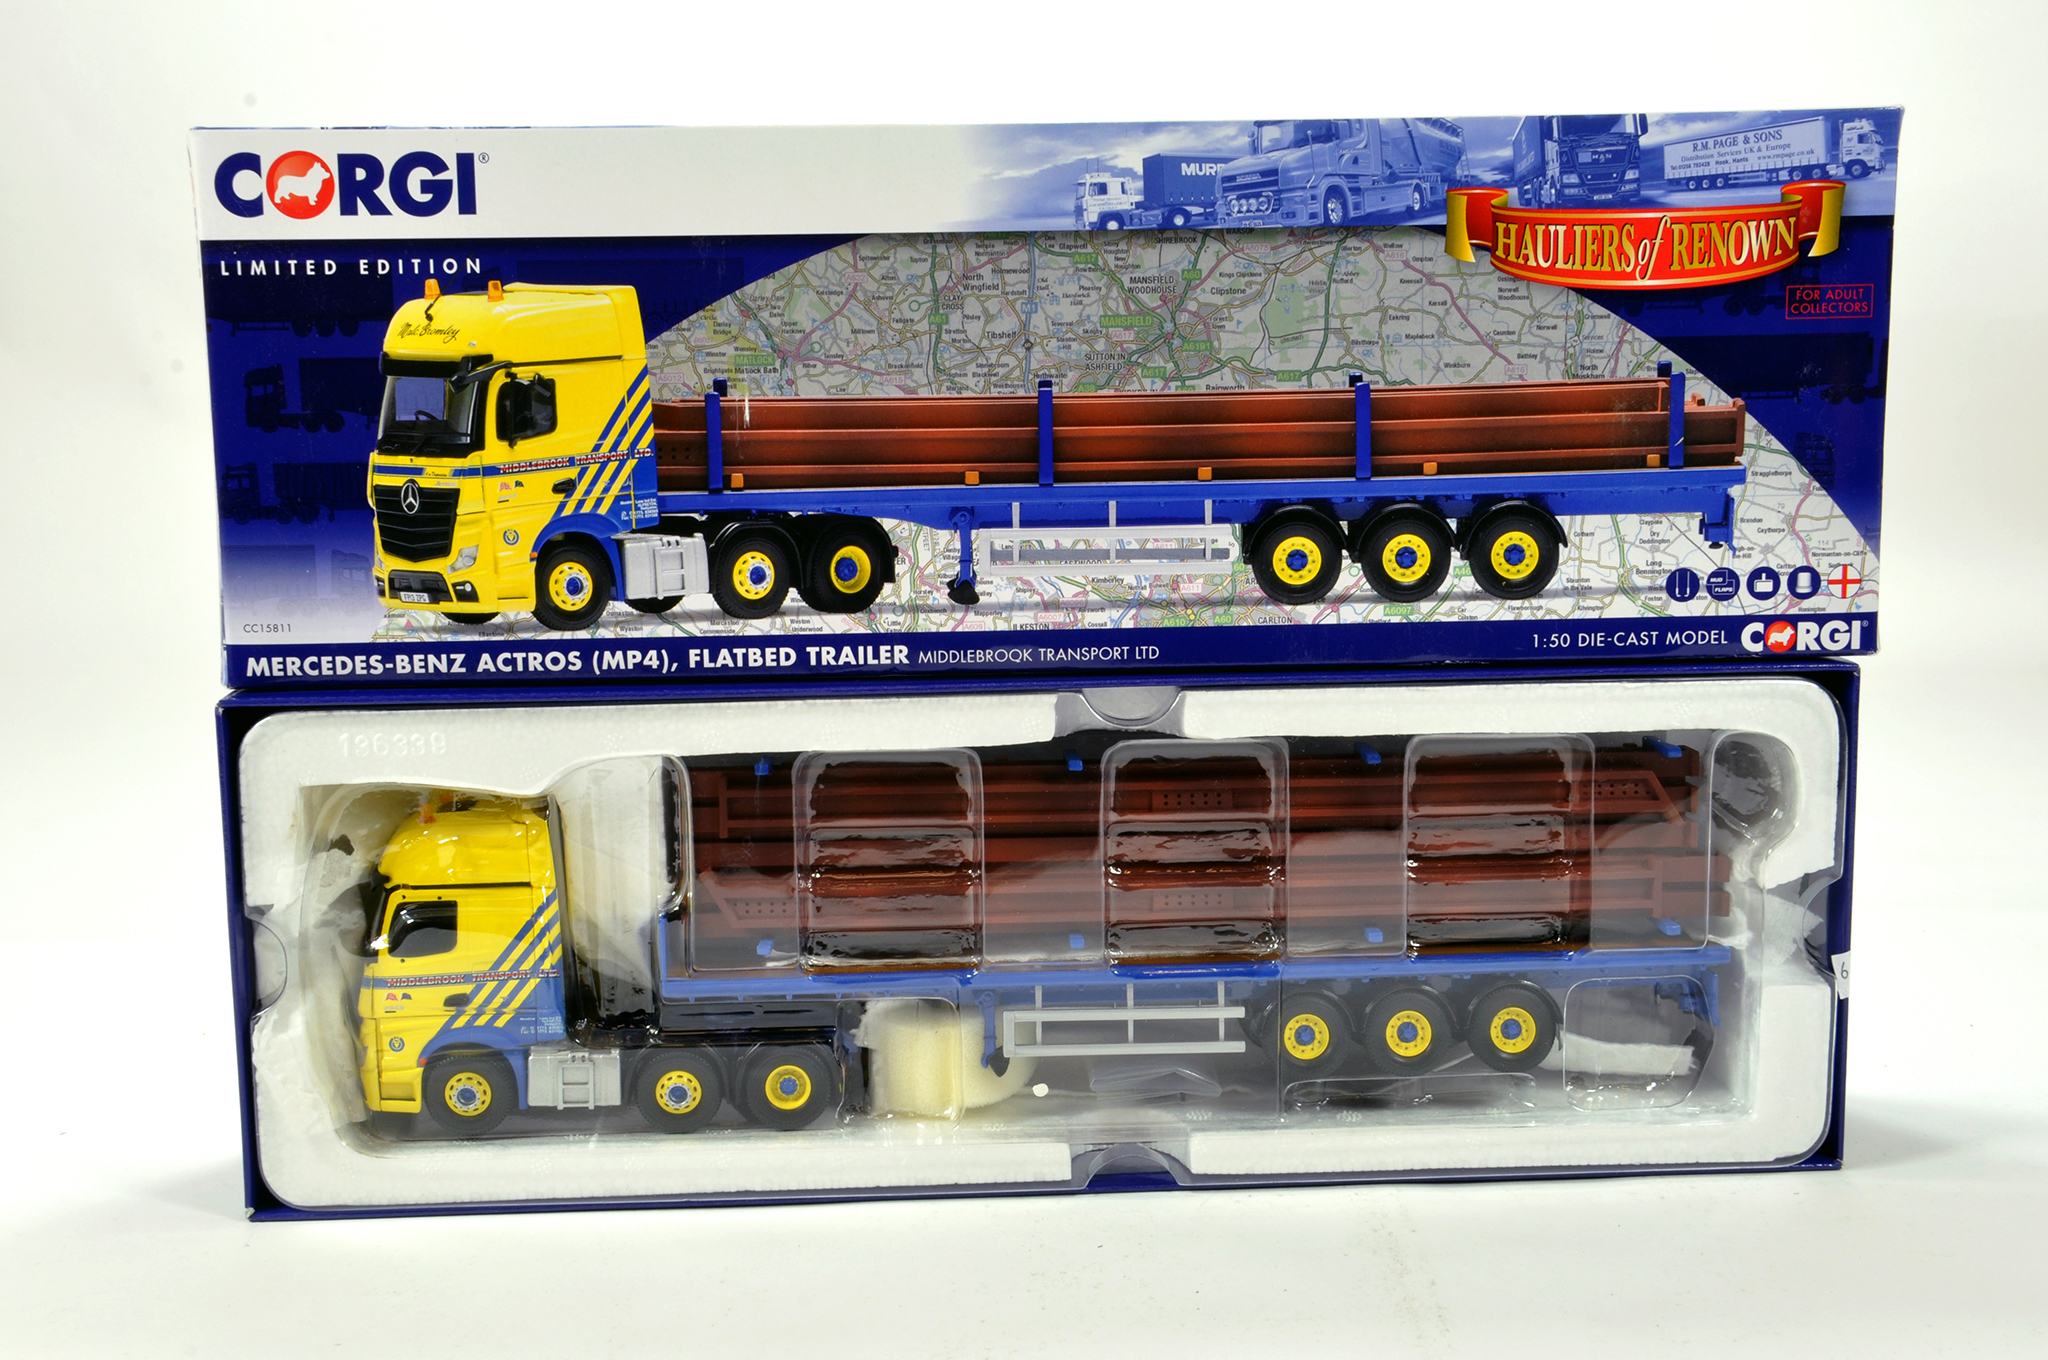 Lot 34 - Corgi 1/50 diecast truck issue comprising No. CC15811 Mercedes Benz Actros Flatbed Trailer in livery